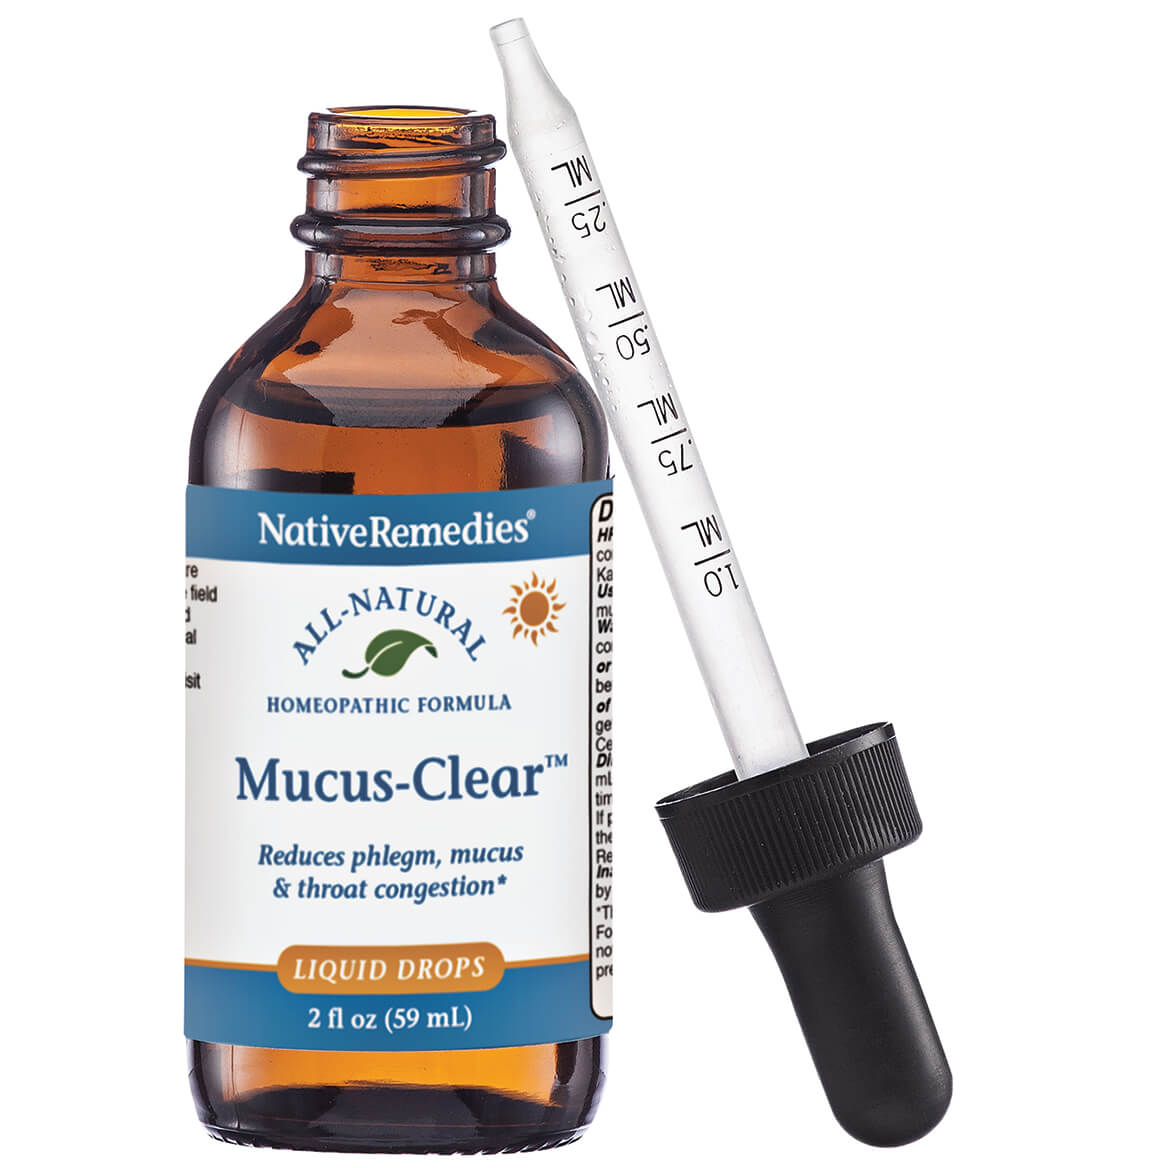 Mucus-Clear™ for Phlegm & Congestion-343693